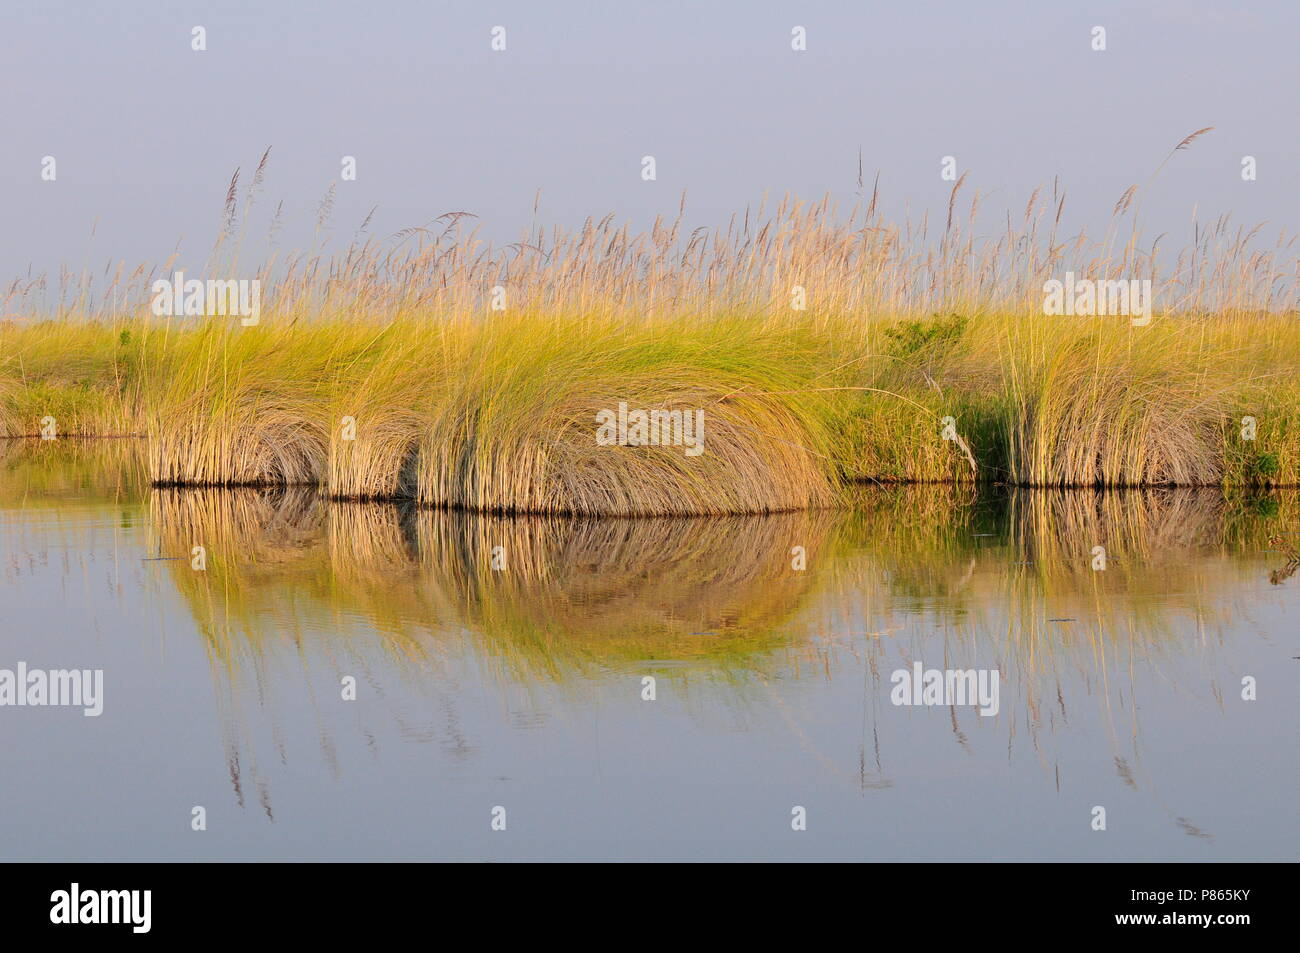 Swamp in Namibia - Stock Image